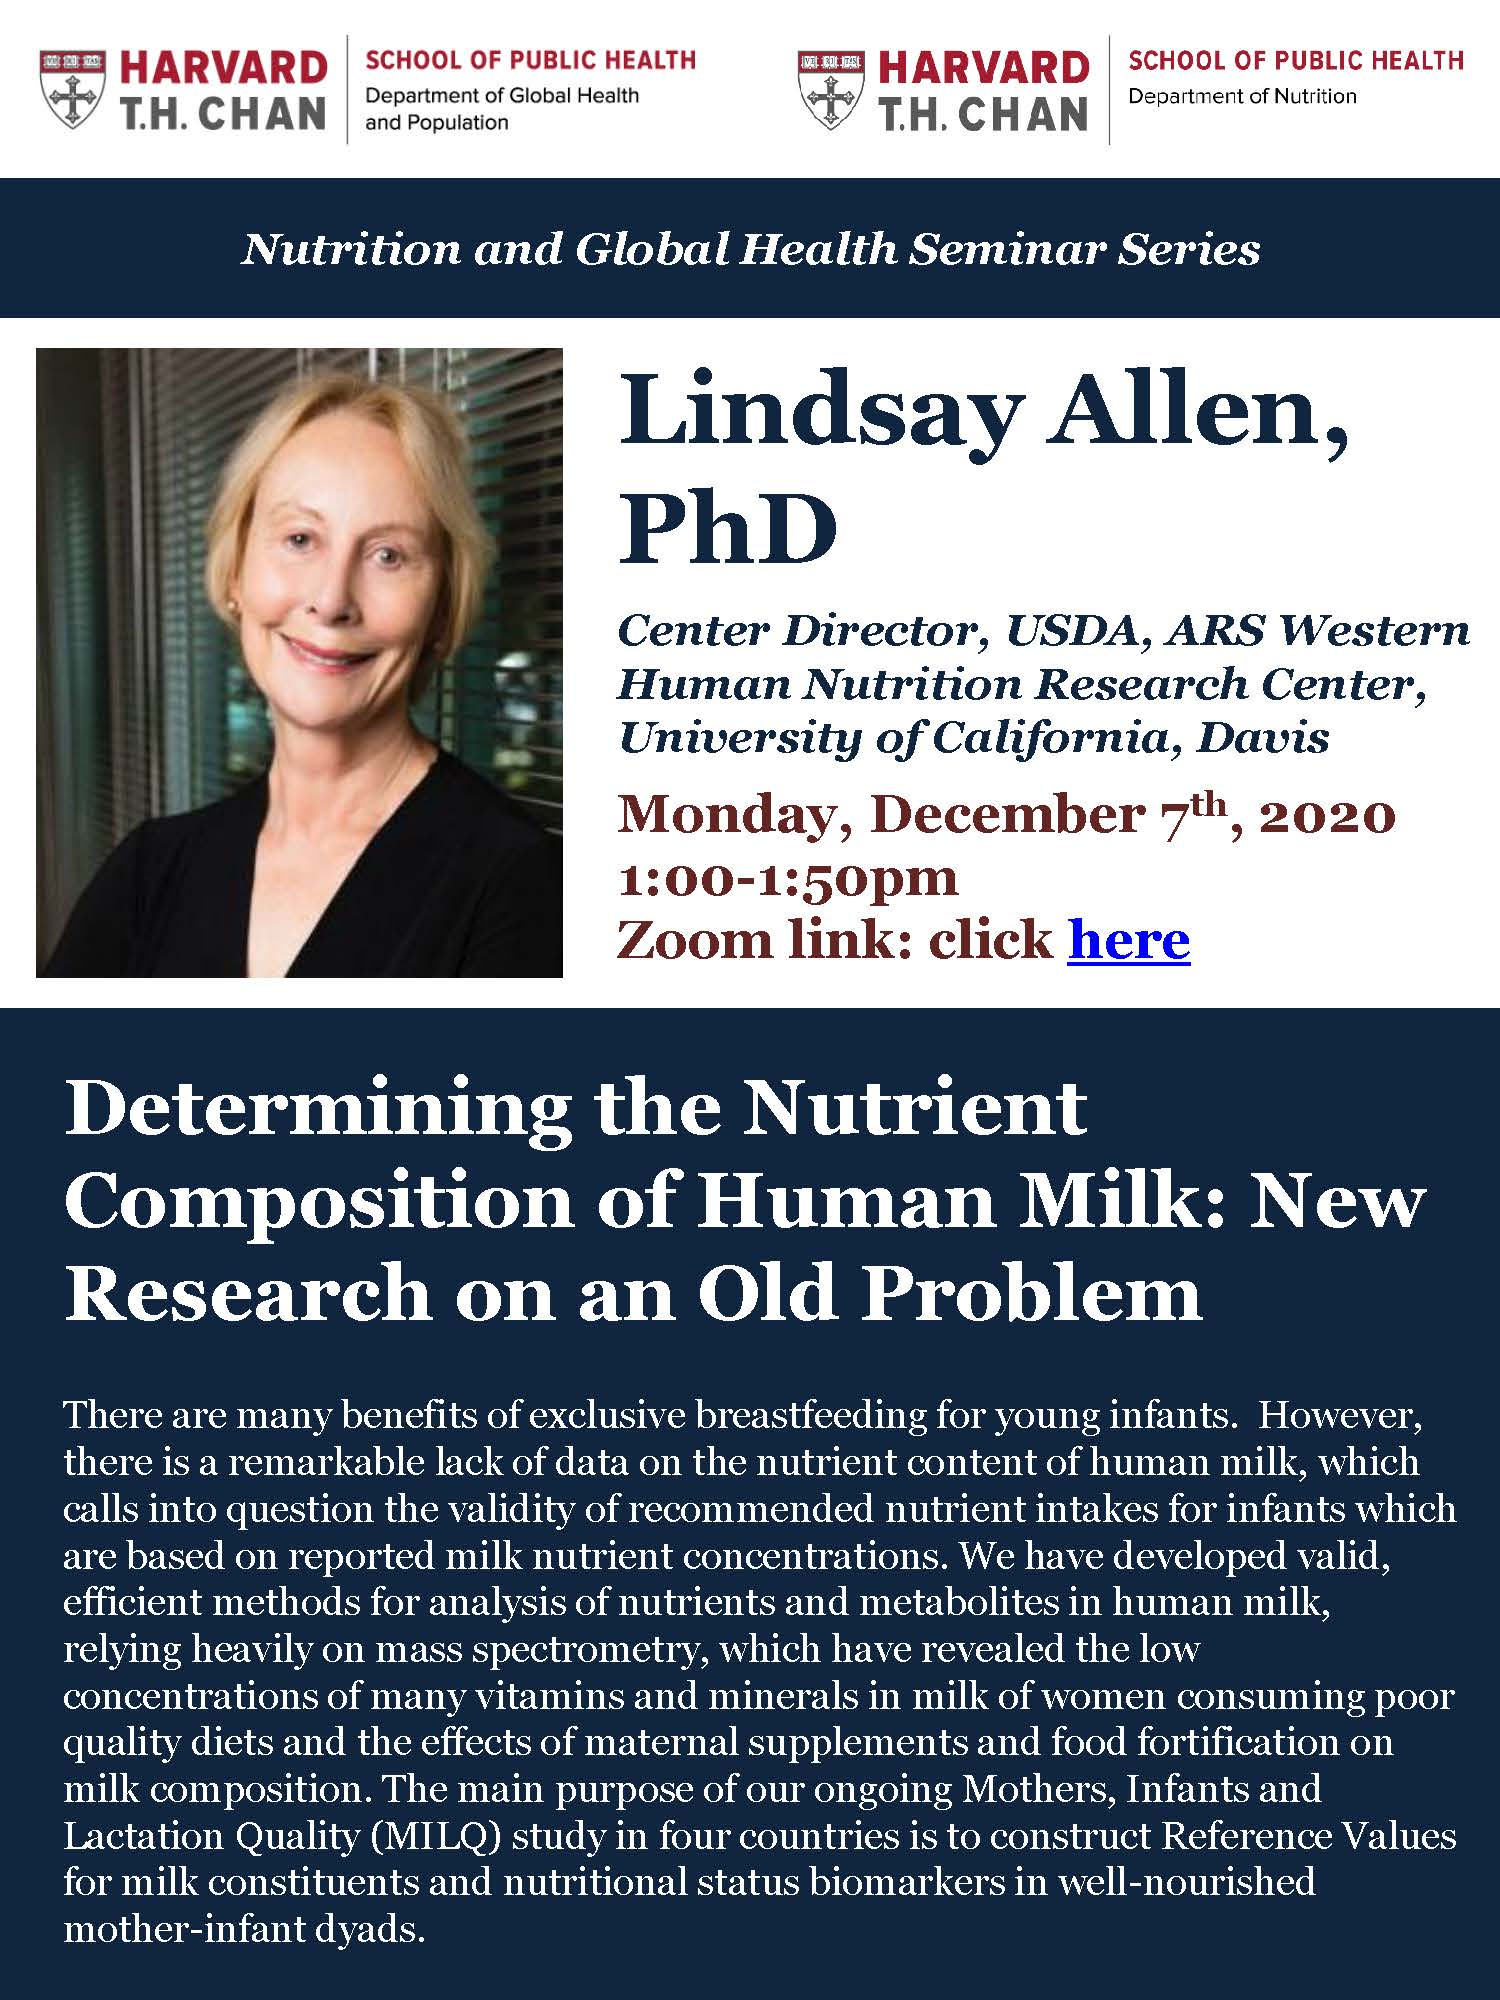 Flyer for Lindsay Allen